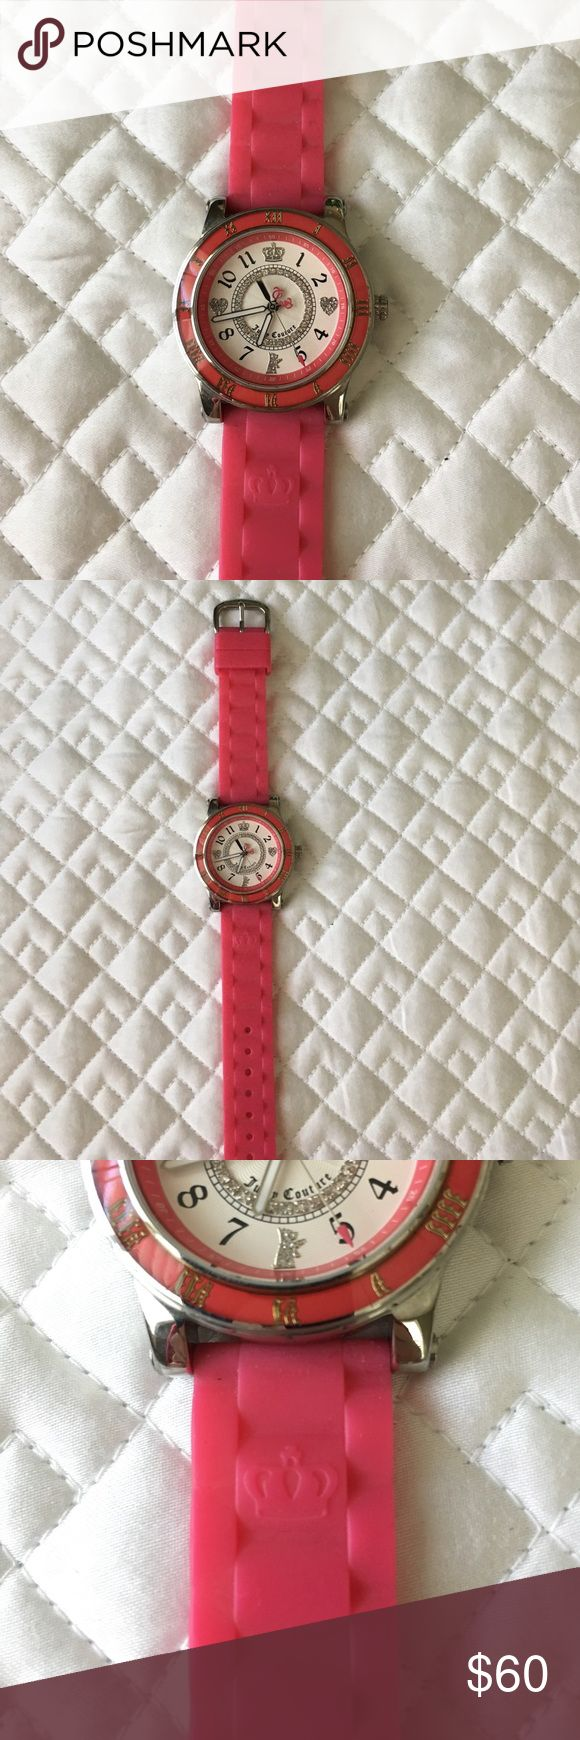 Juicy Couture watch with Swarovski crystals Rubber band. A few scratches on the back of the face. No scratching on the favs of the watch. Needs batteries. Perfect for athleisure looks. Juicy Couture Accessories Watches